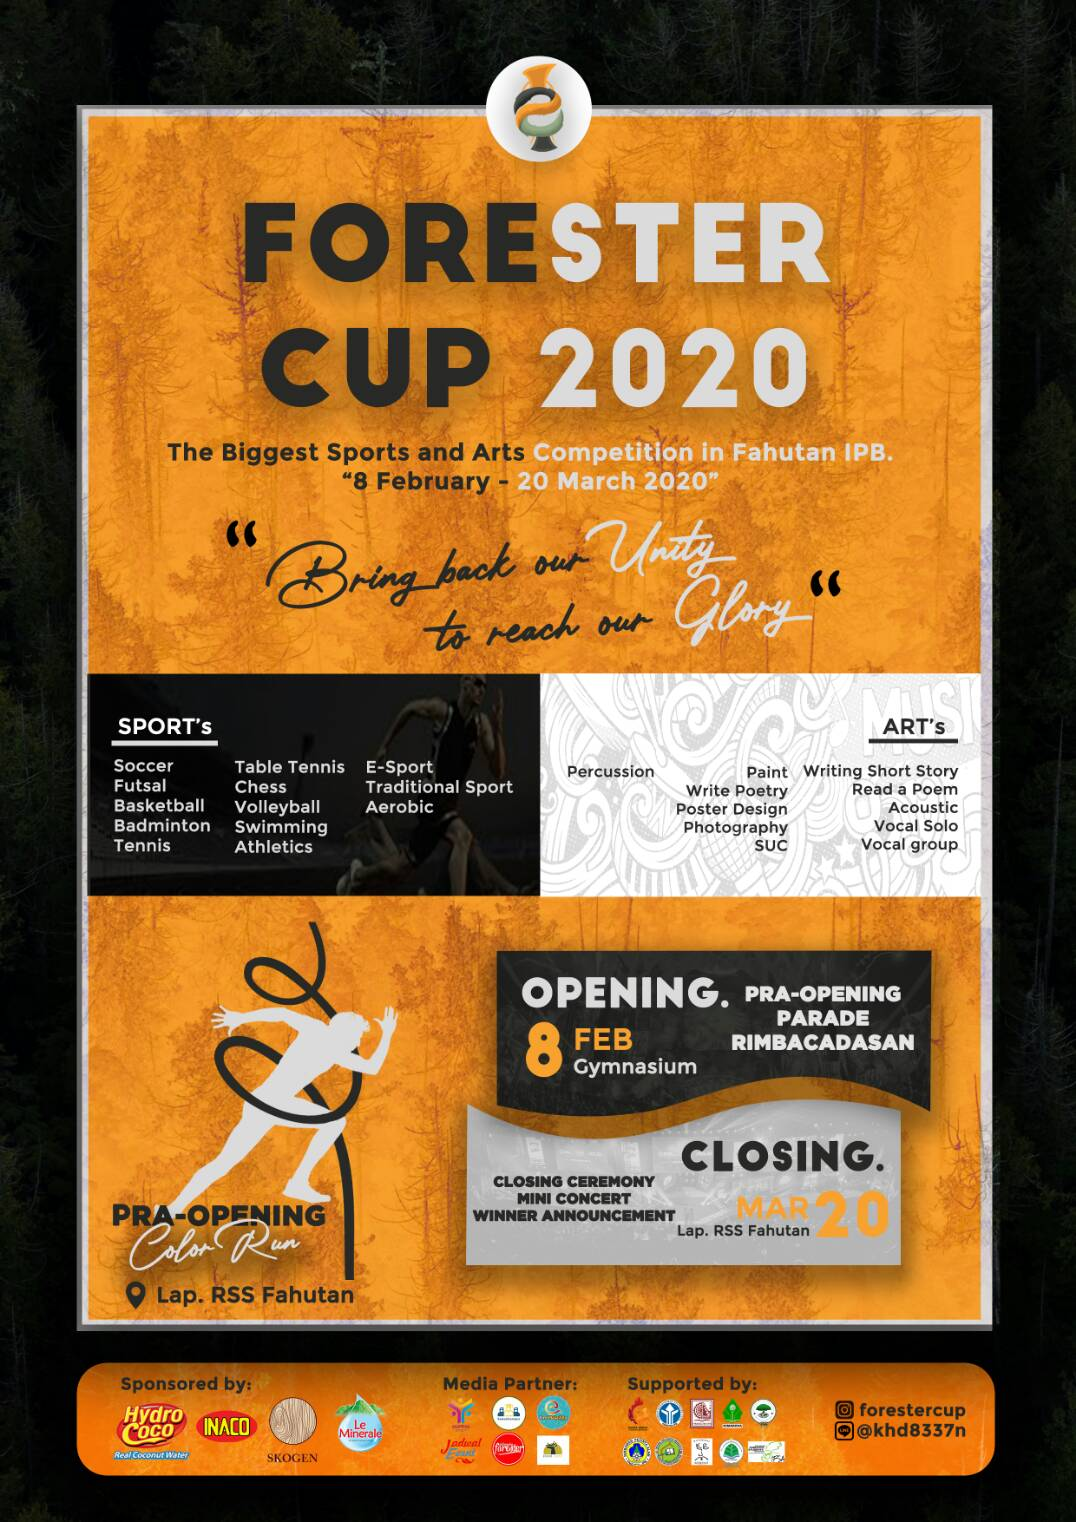 FORESTER CUP 2020